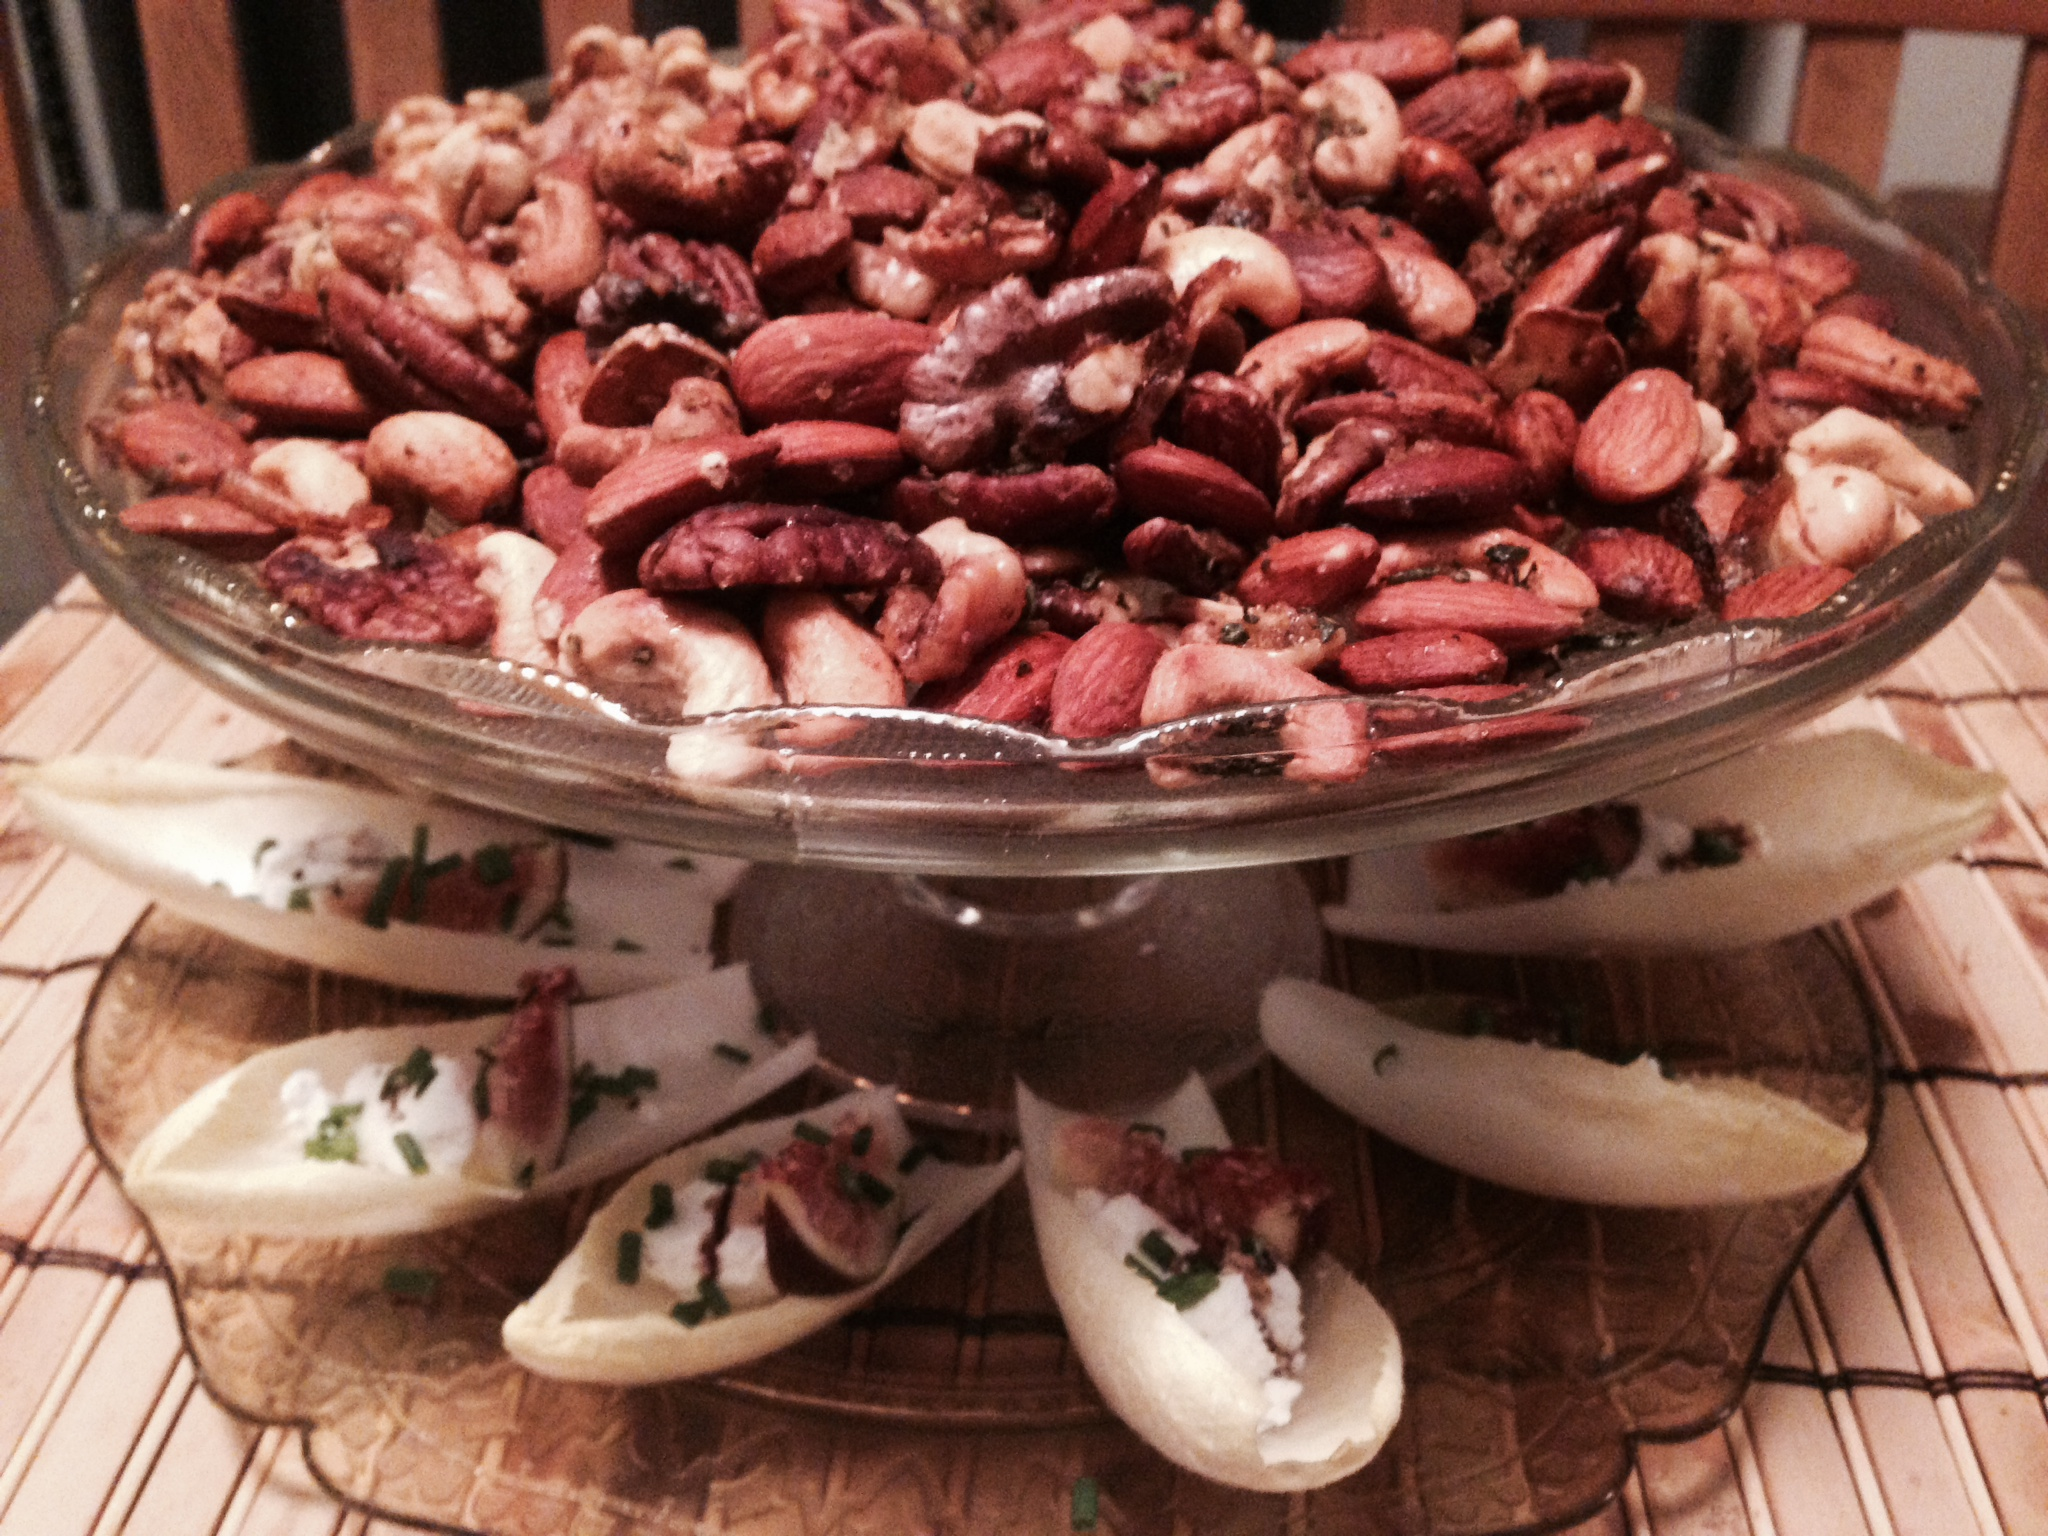 Holiday worthy appetizers: Warm Rosemary, Shallot, and Garlic Mixed Nuts & Fresh Endive Boats